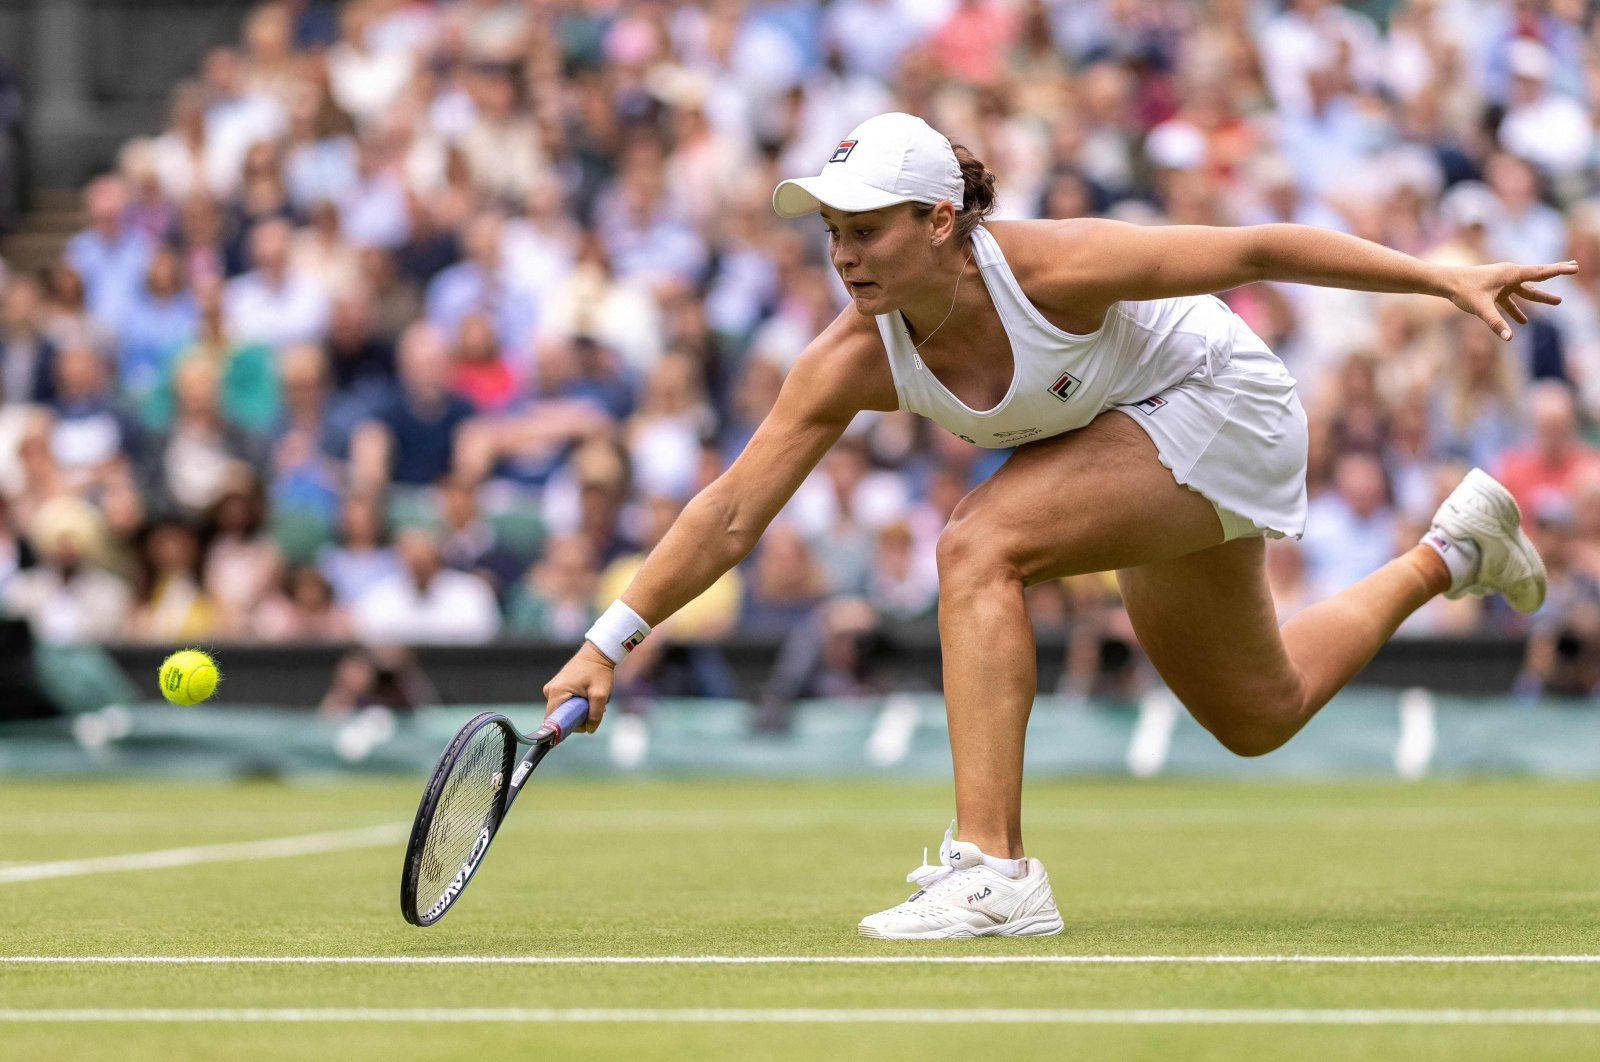 Australia's Ashleigh Barty returns against Germany's Angelique Kerber during their Wimbledon women's semifinal match at The All England Tennis Club, Wimbledon, southwest London, England, July 8, 2021. (AFP Photo)